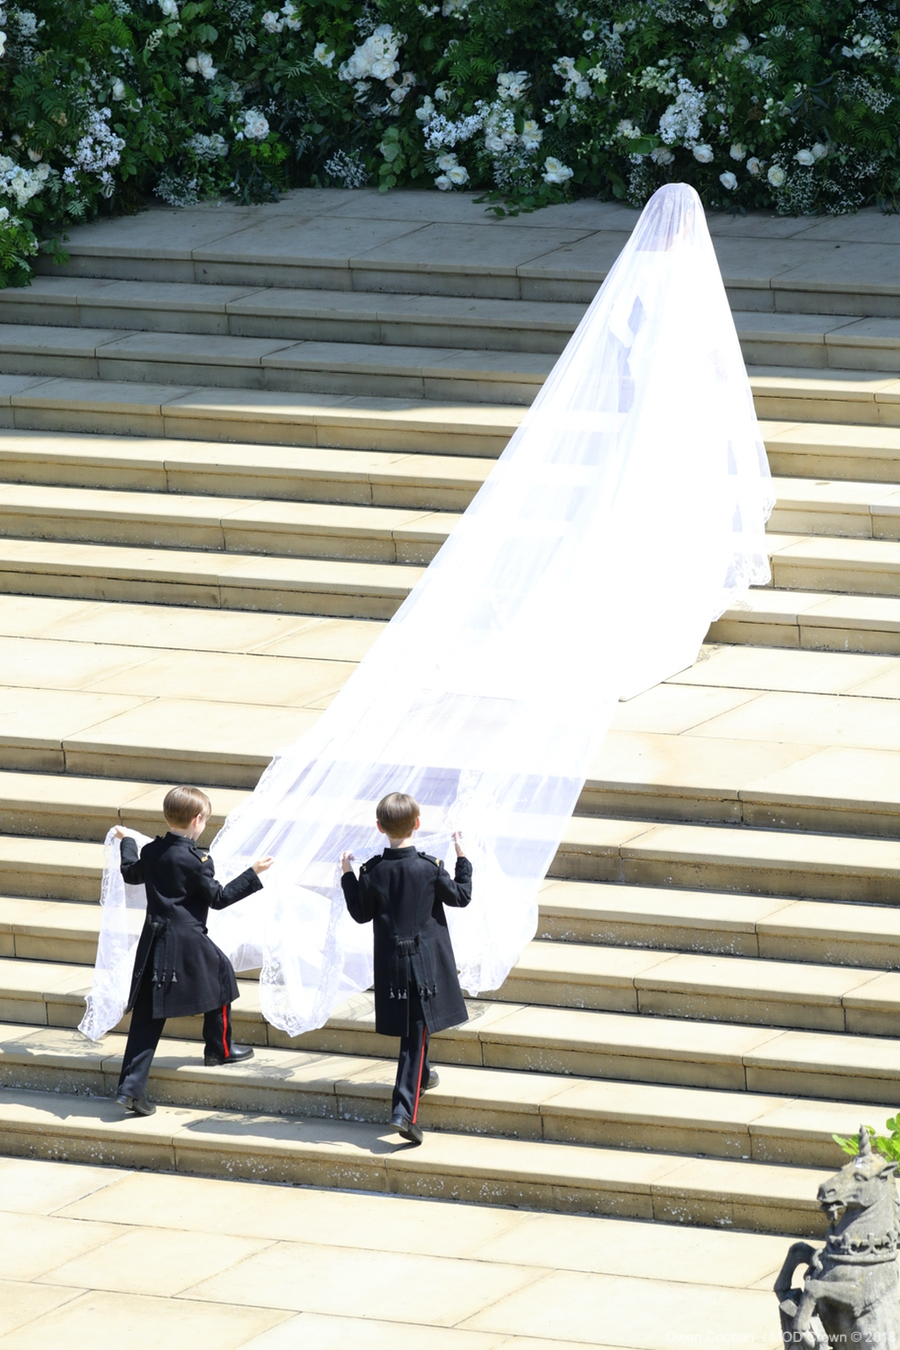 Meghan Markle's veil was 5 meters long